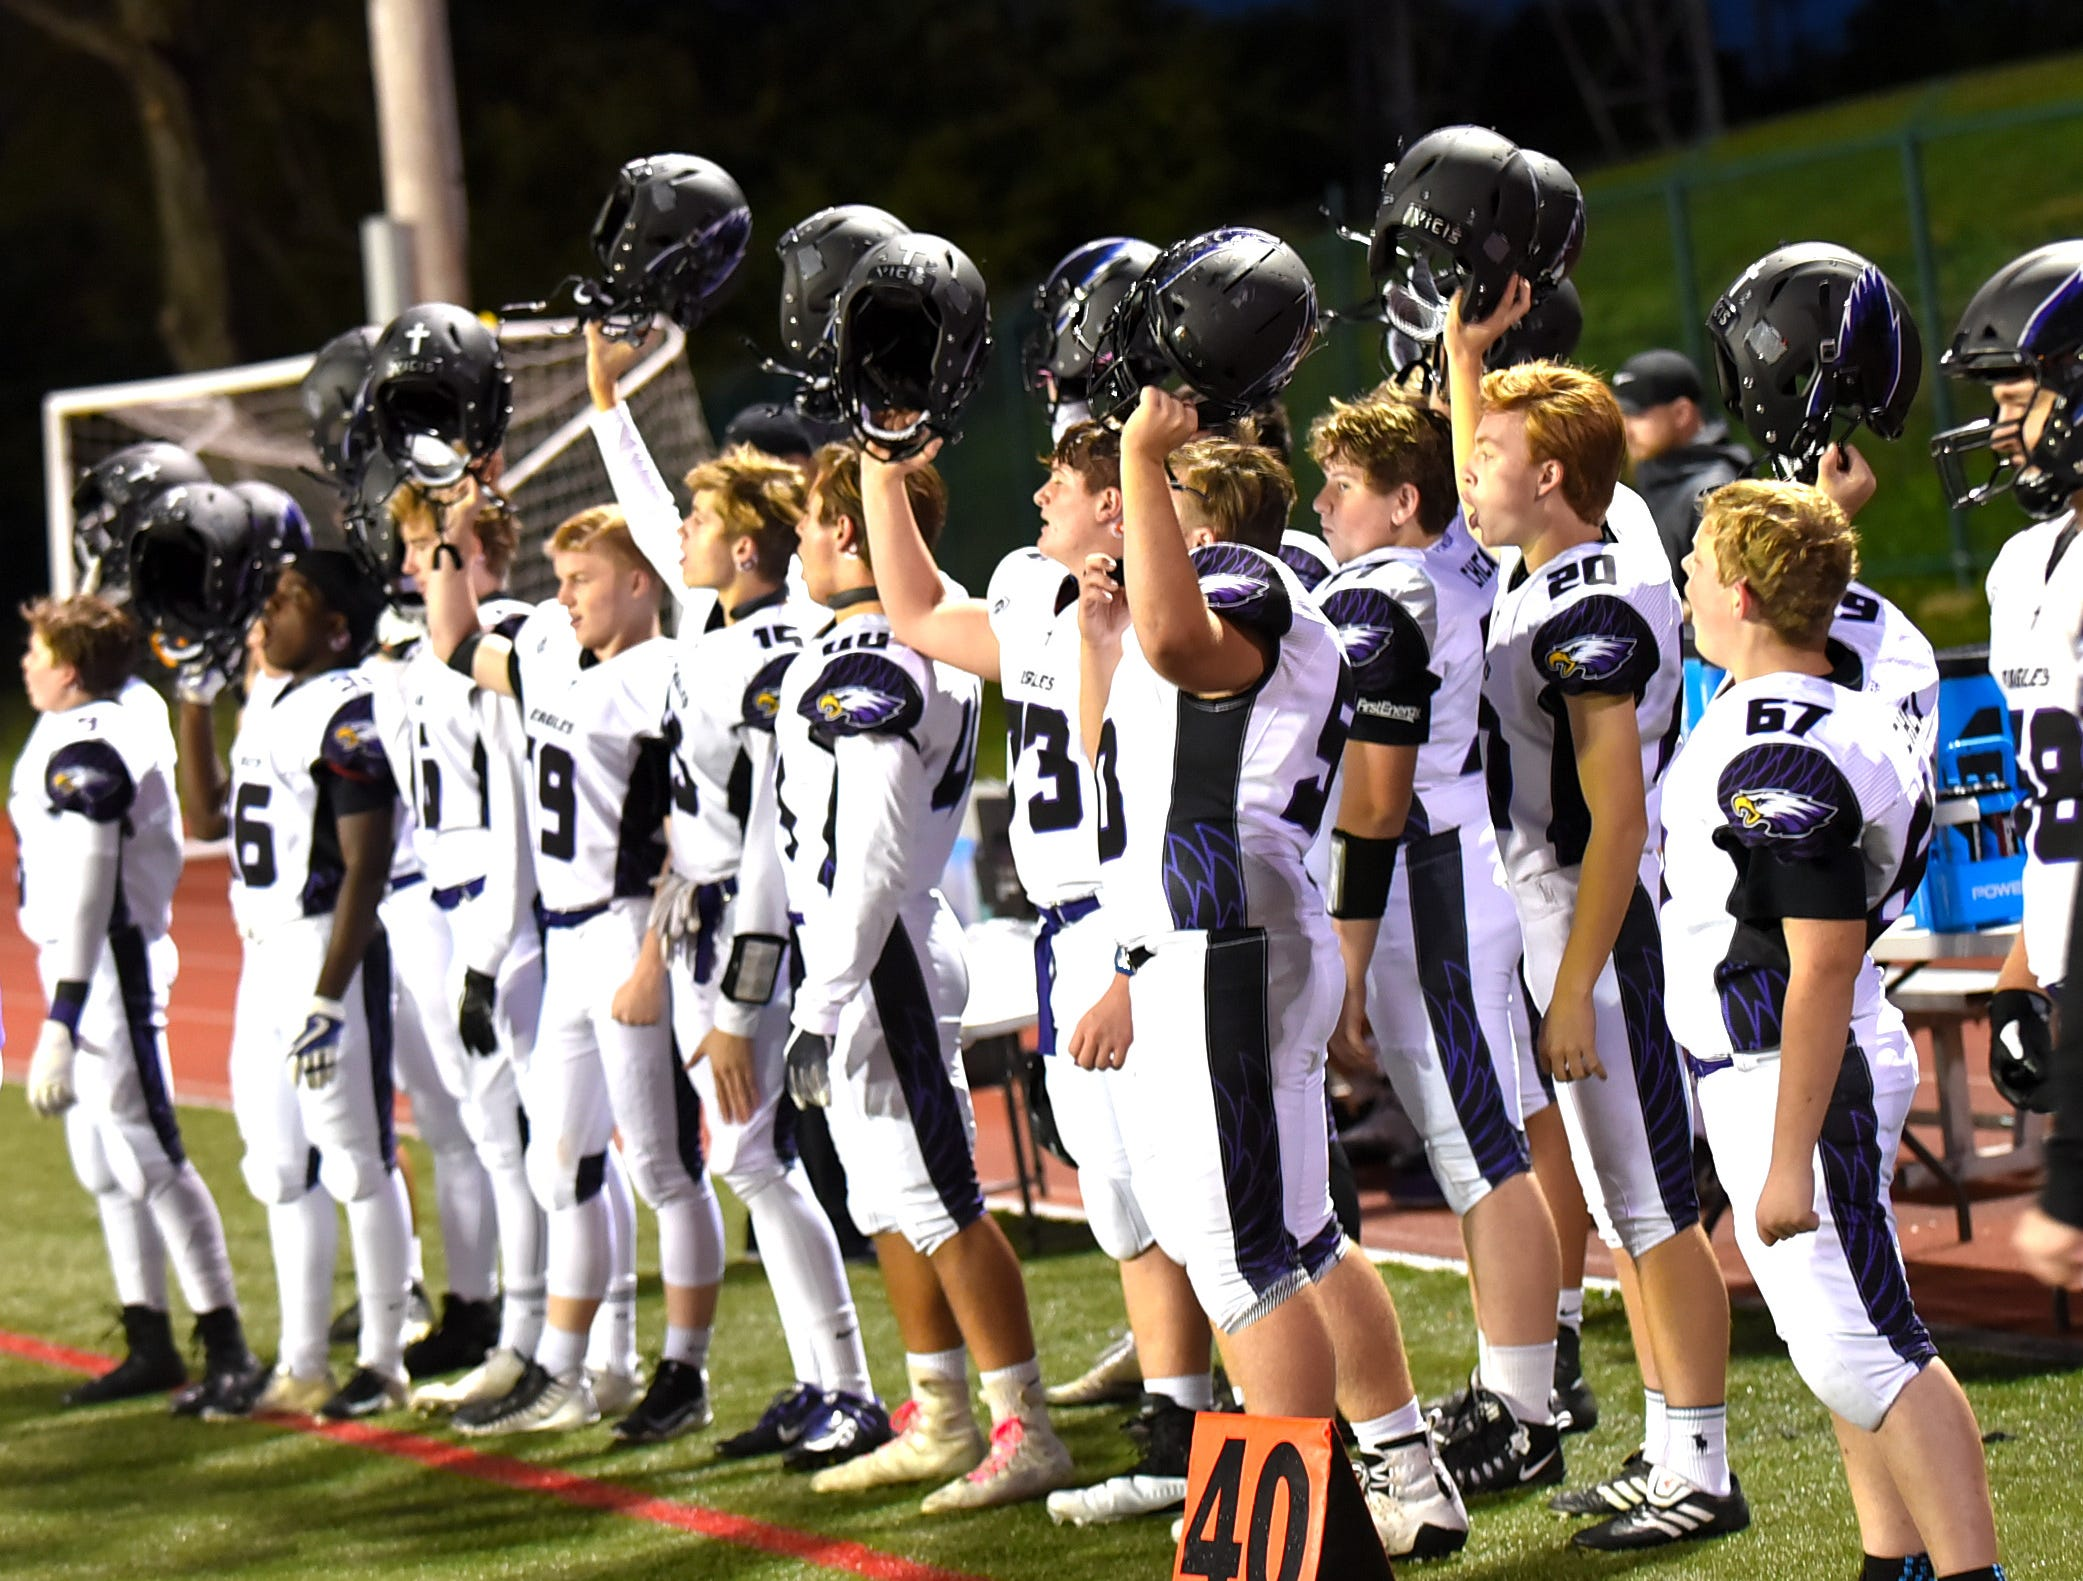 The CHCA Eagles raise their helmets for another kickoff after scoring a touchdown in their win over Norwood 50-0, October 19, 2018.